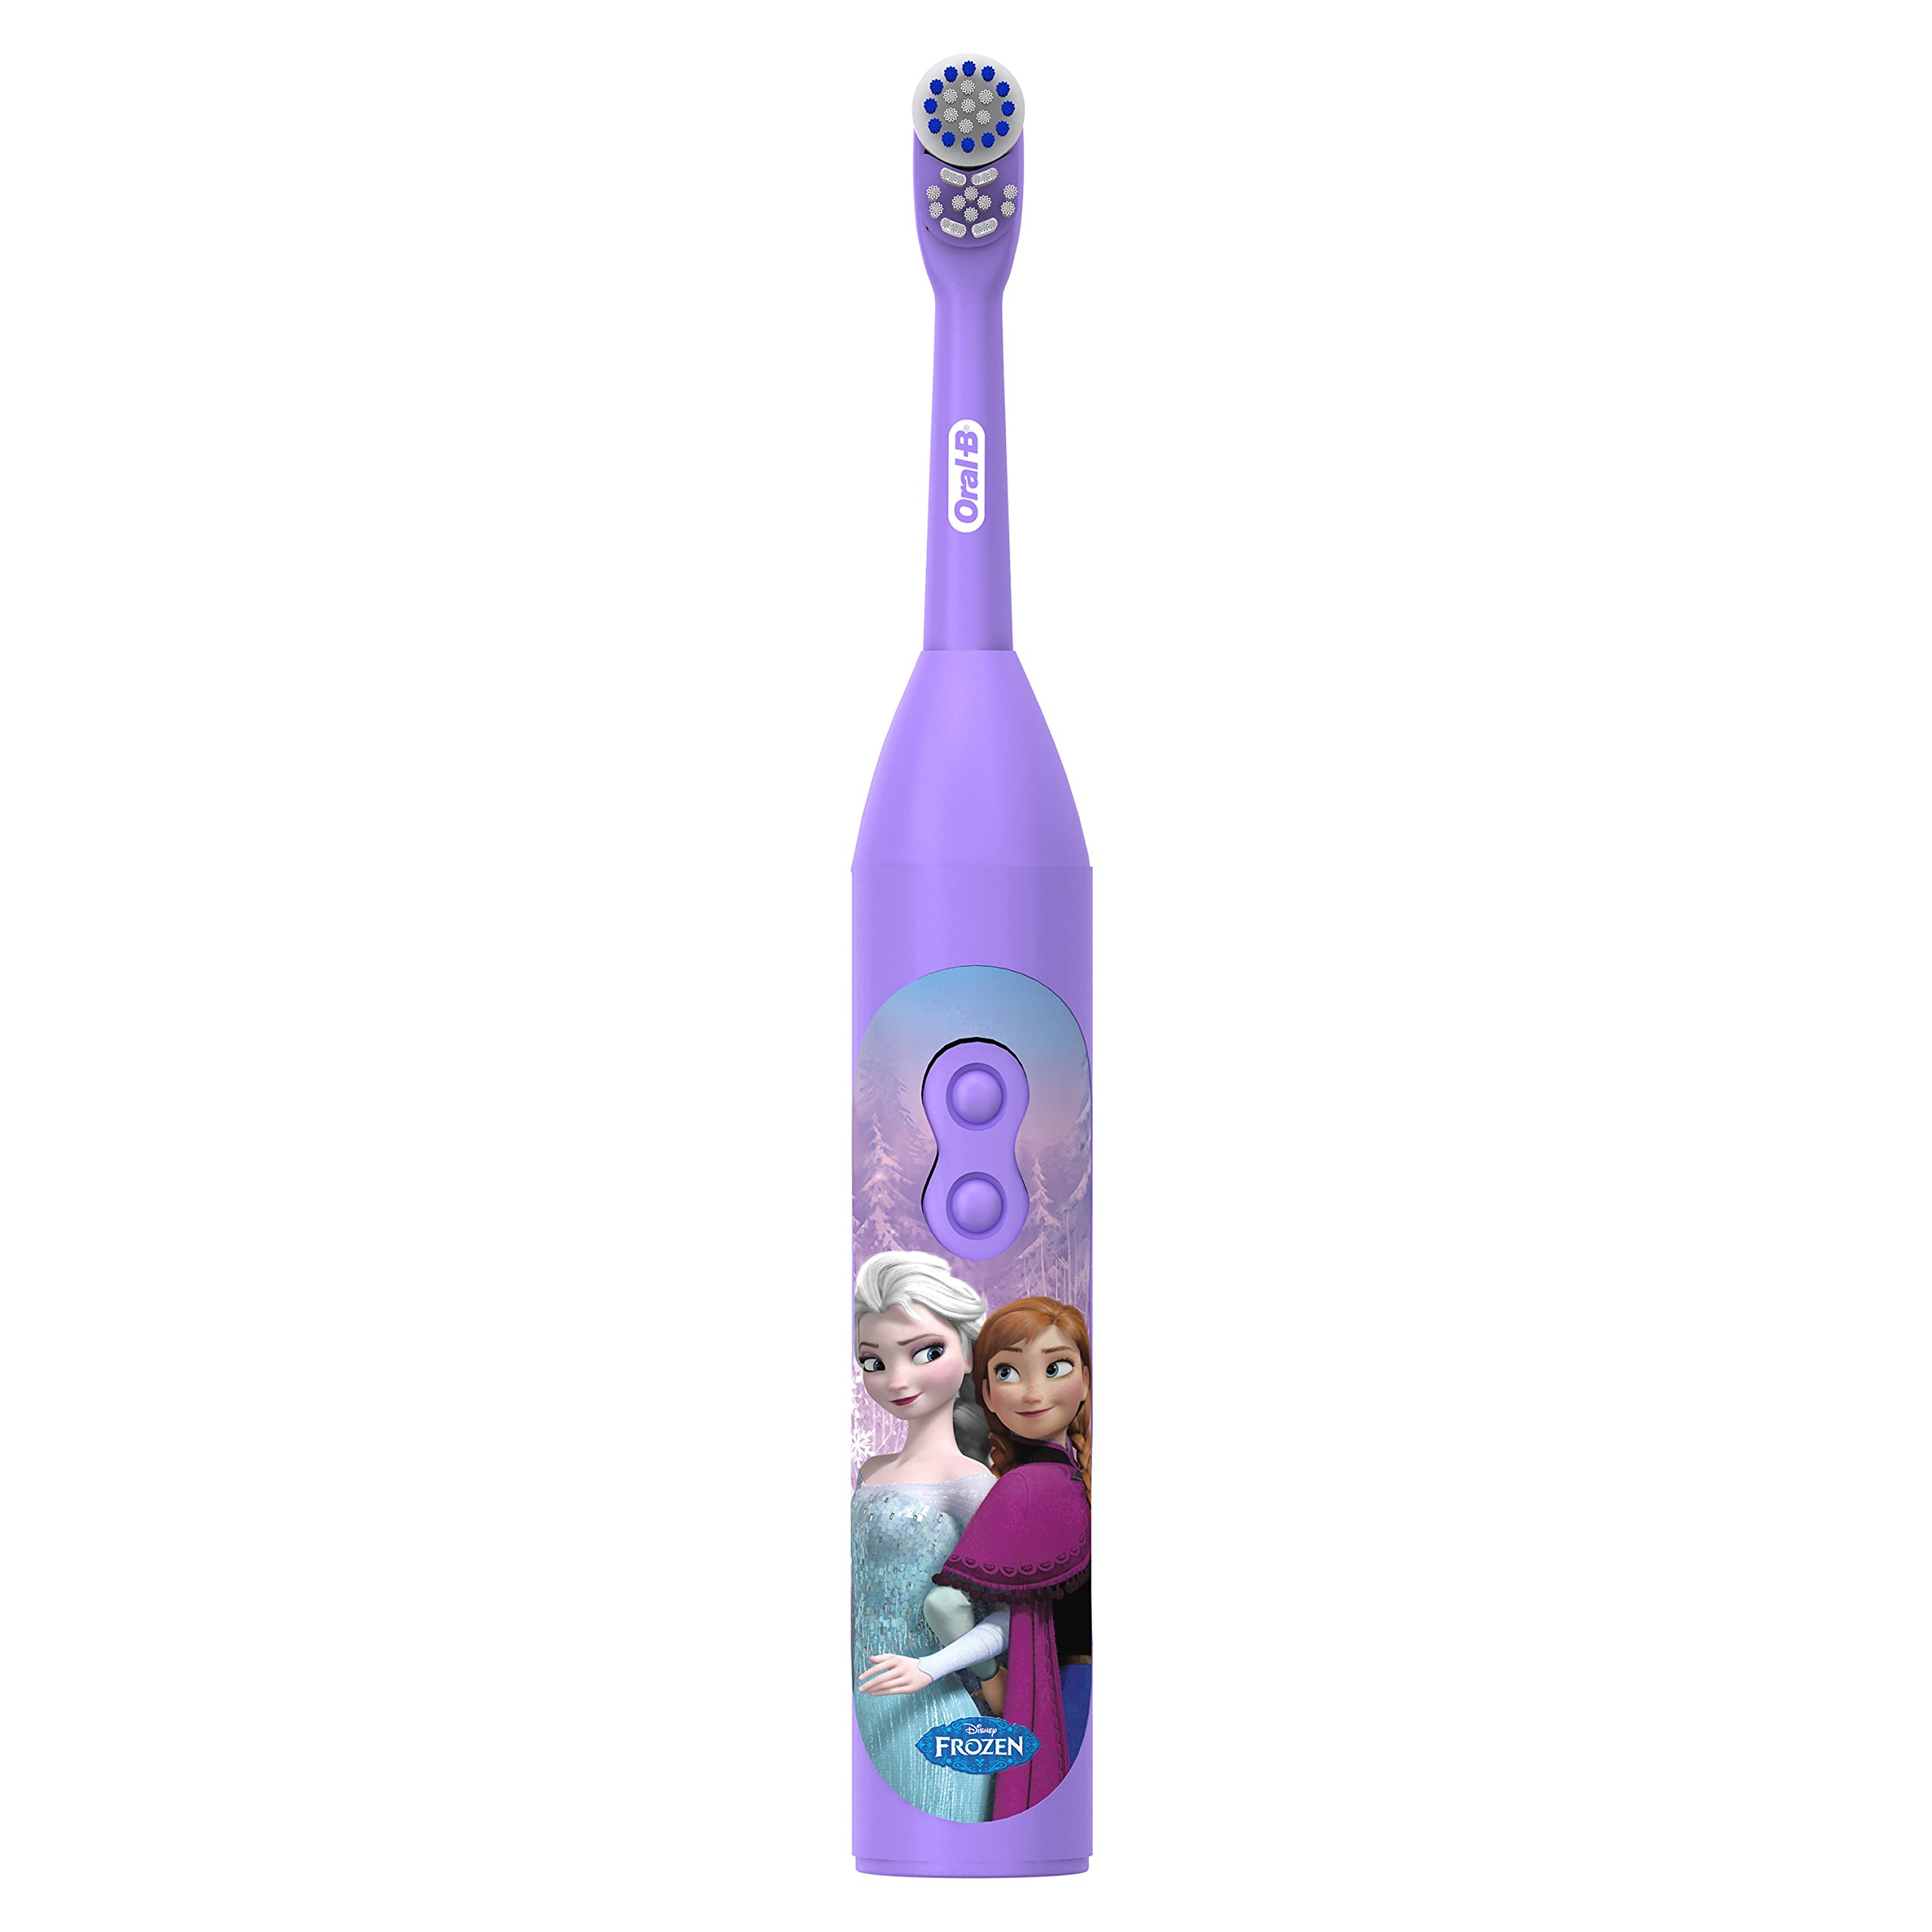 Oral-B Pro-Health Jr. Battery Powered Kids Toothbrush featuring Disneys Frozen,